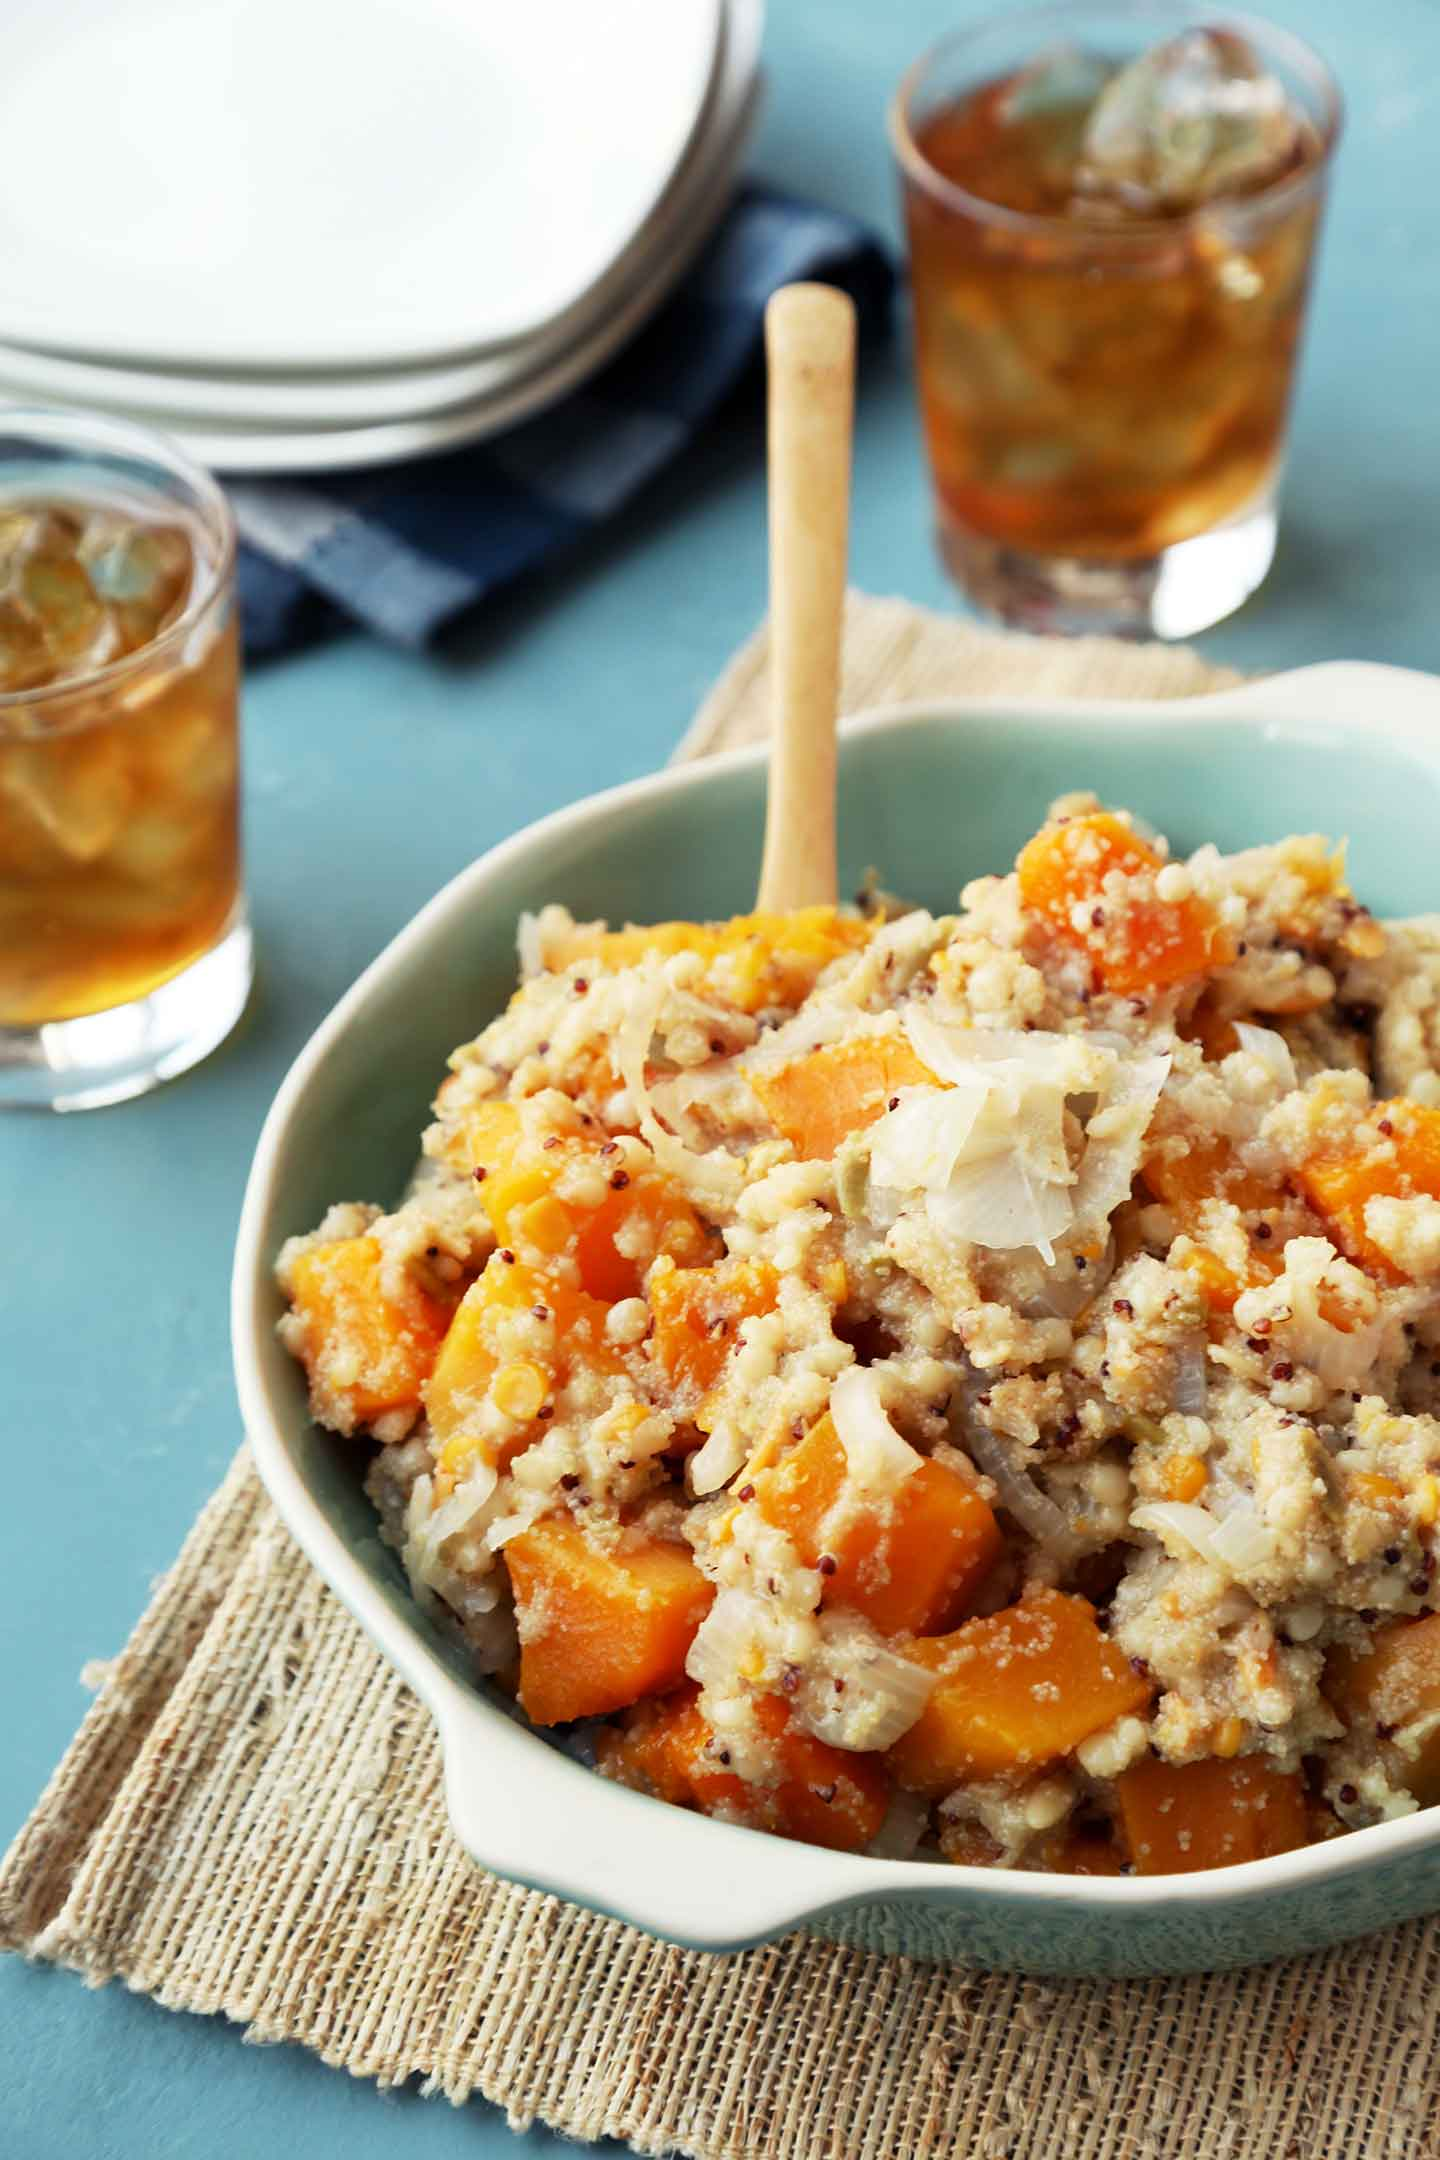 Millet and Teff with Squash and Onions